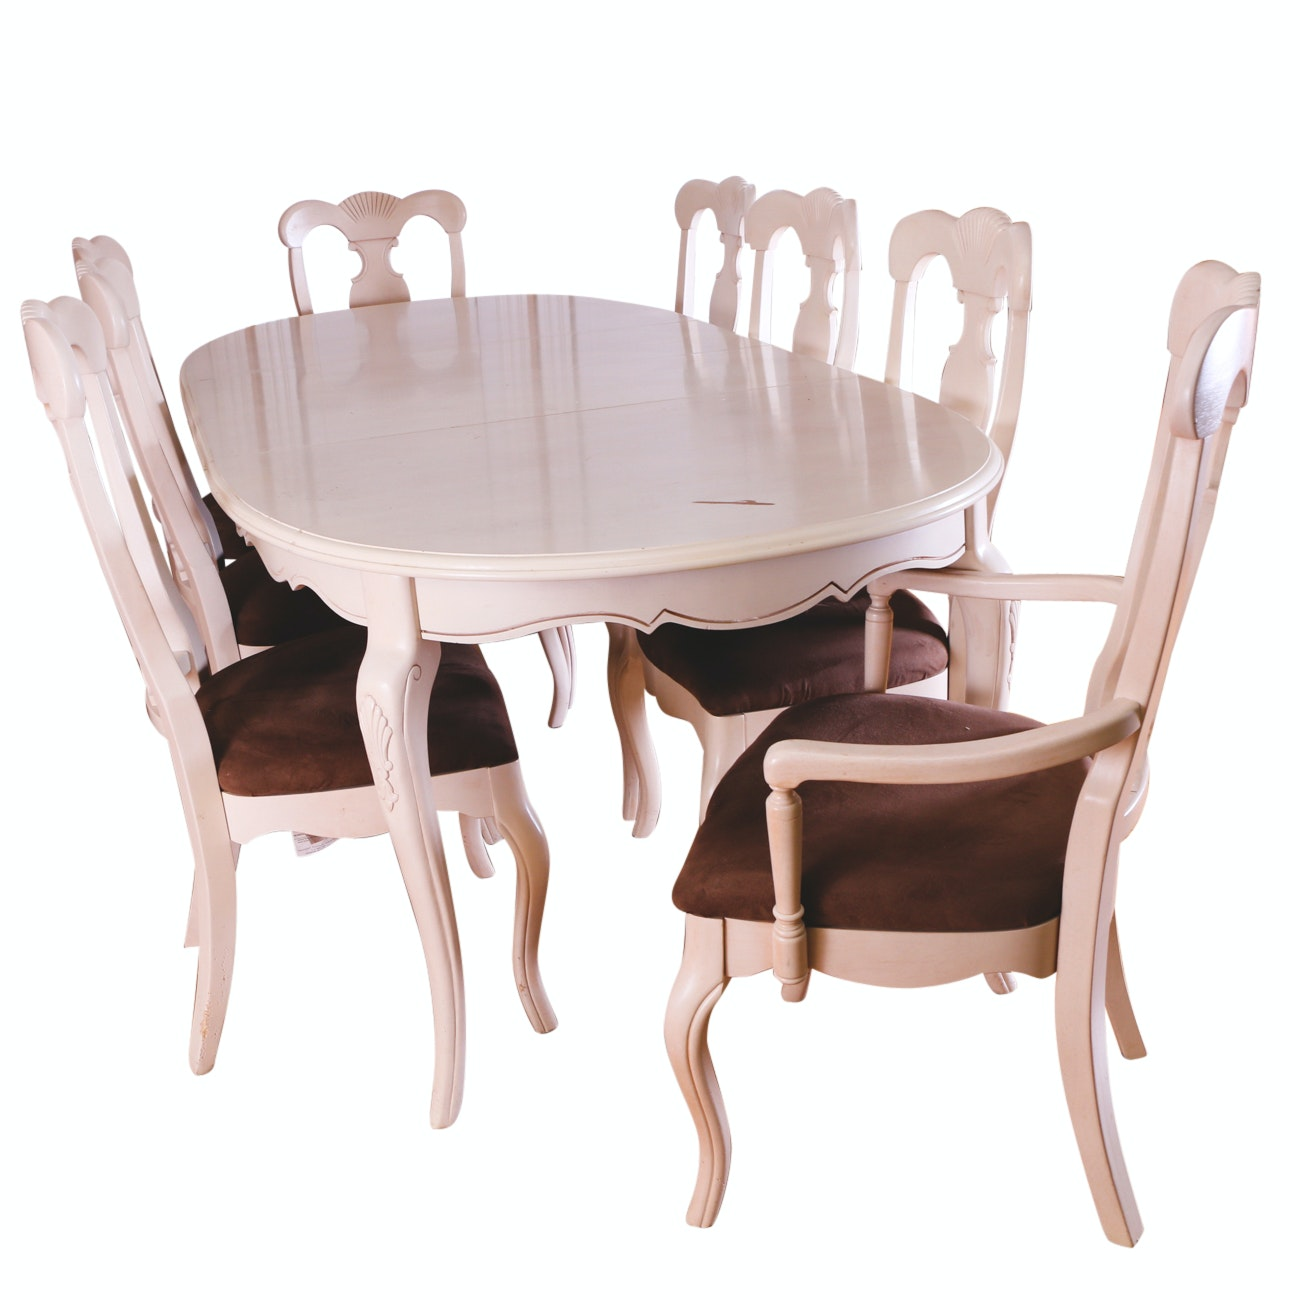 Wooden Louis XV Style Dining Table and Chairs